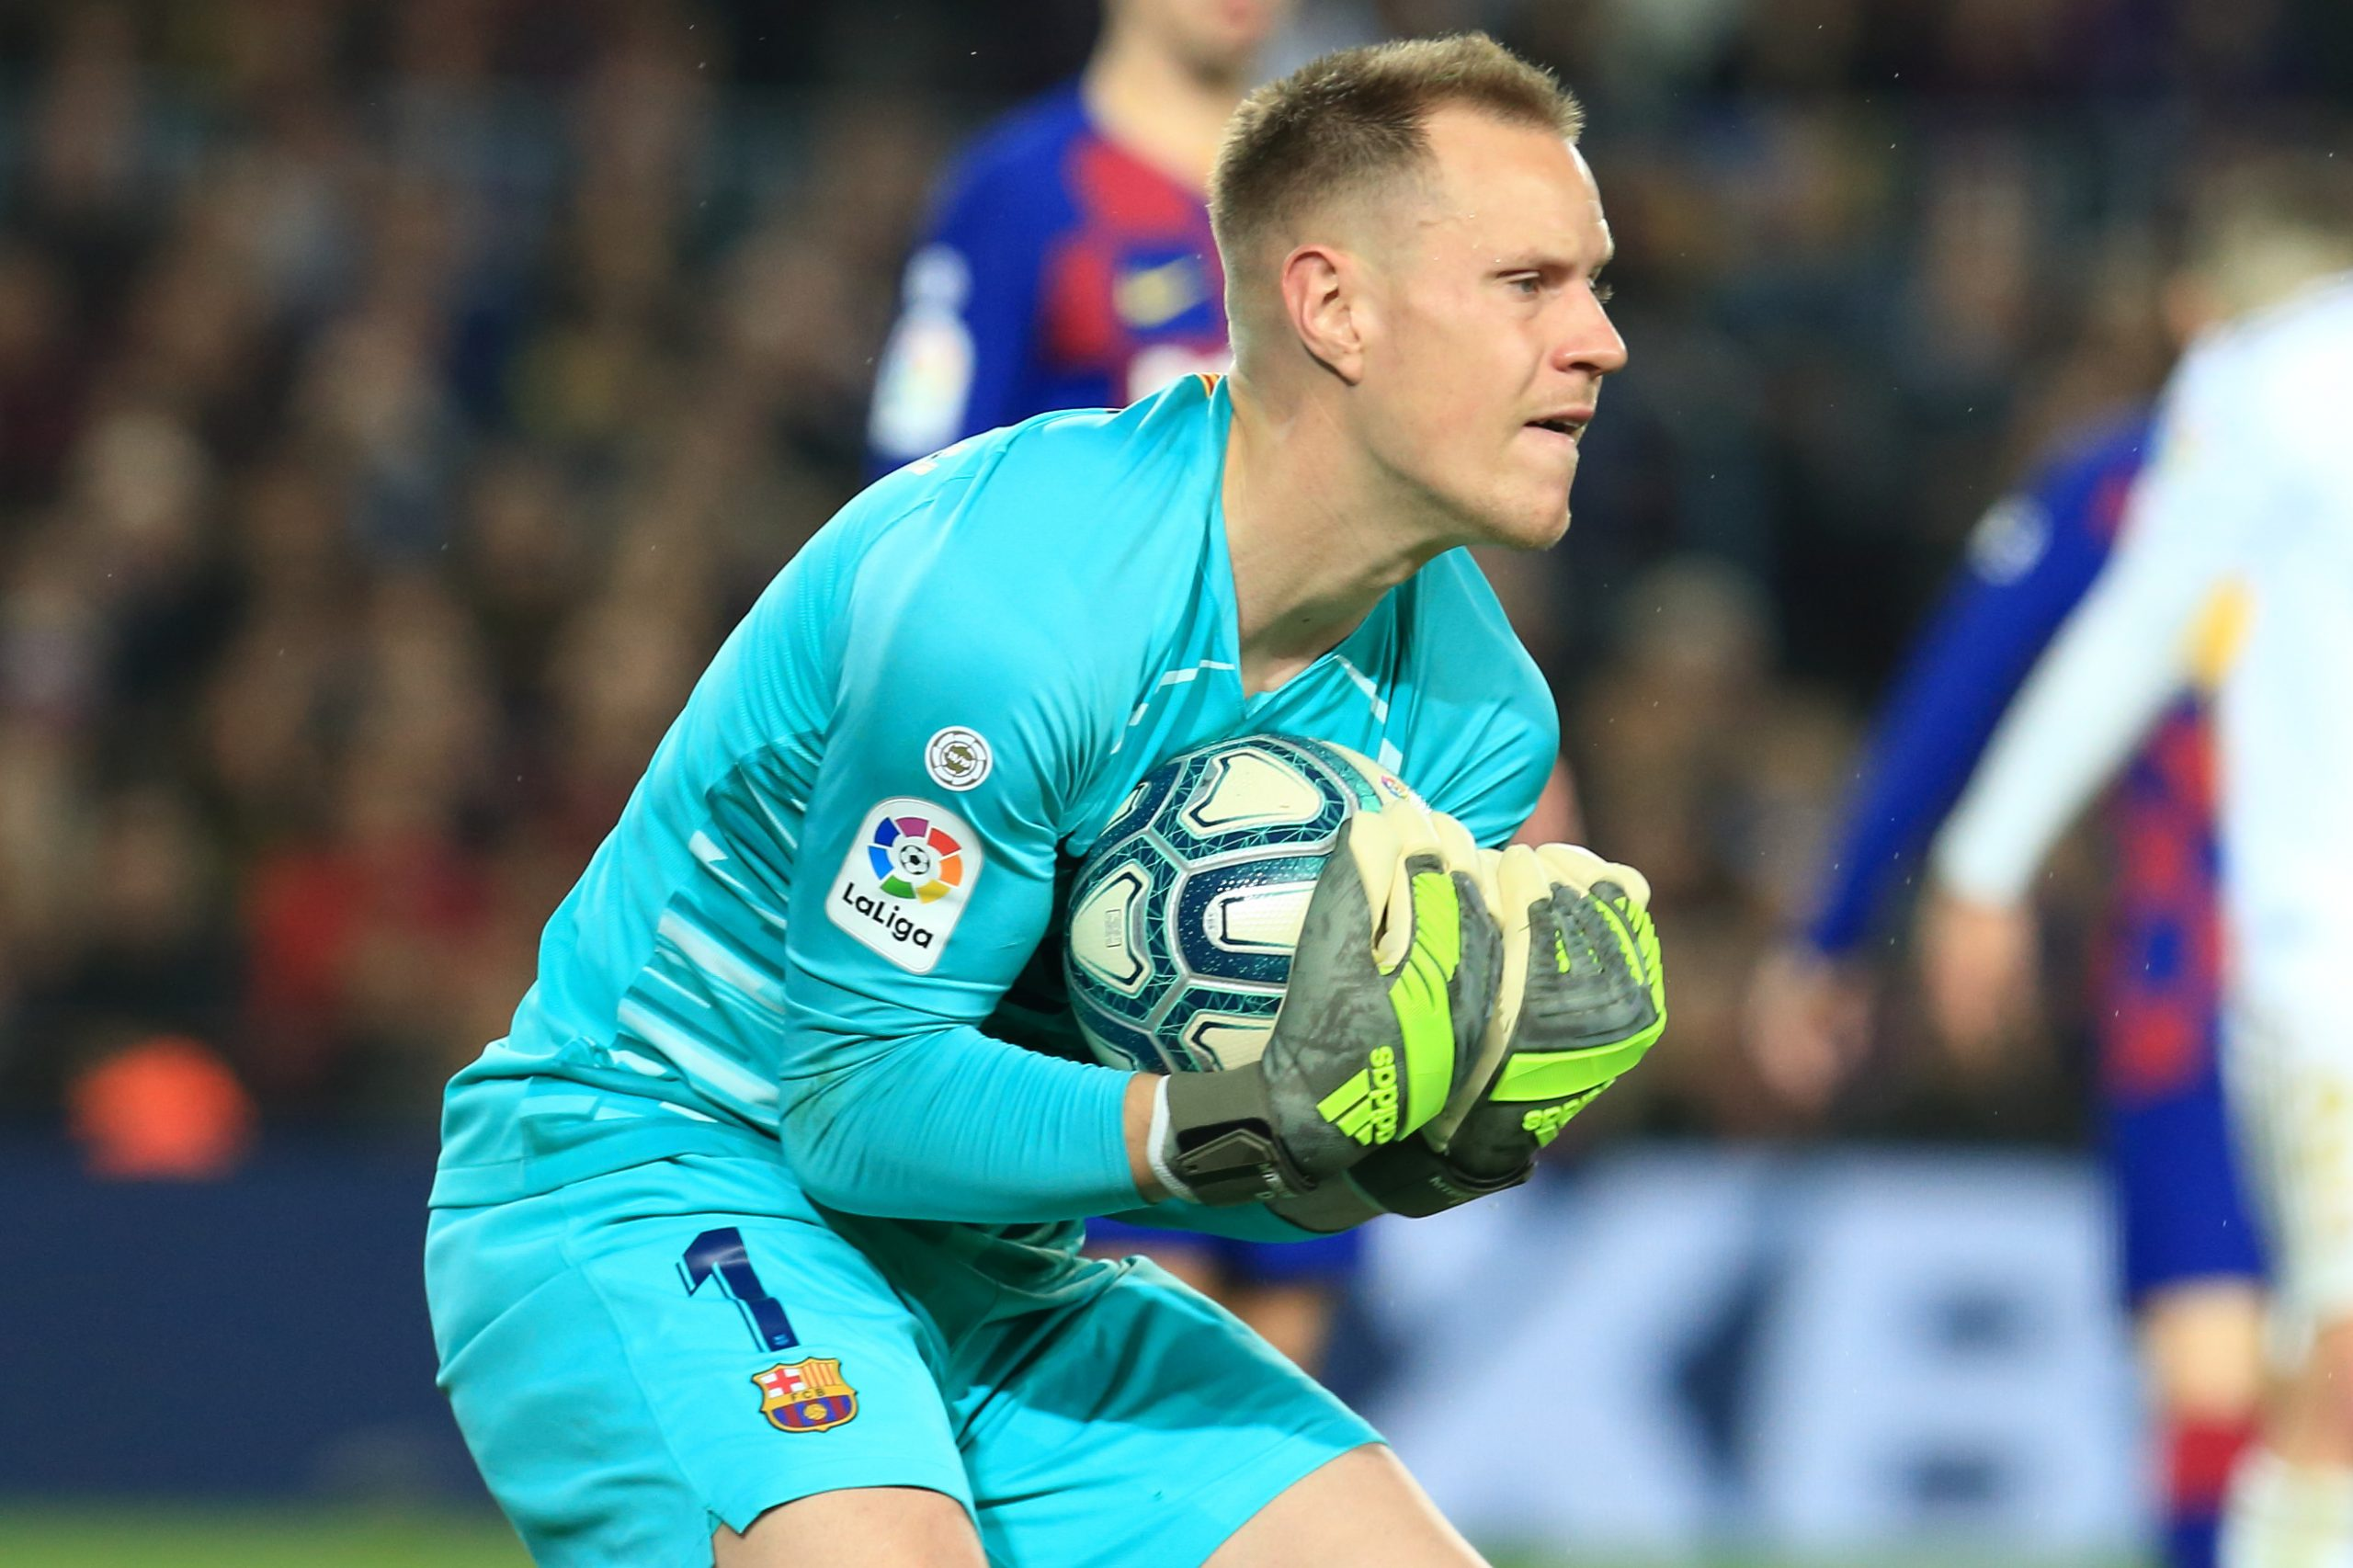 Five things you might not know about Marc-André ter Stegen